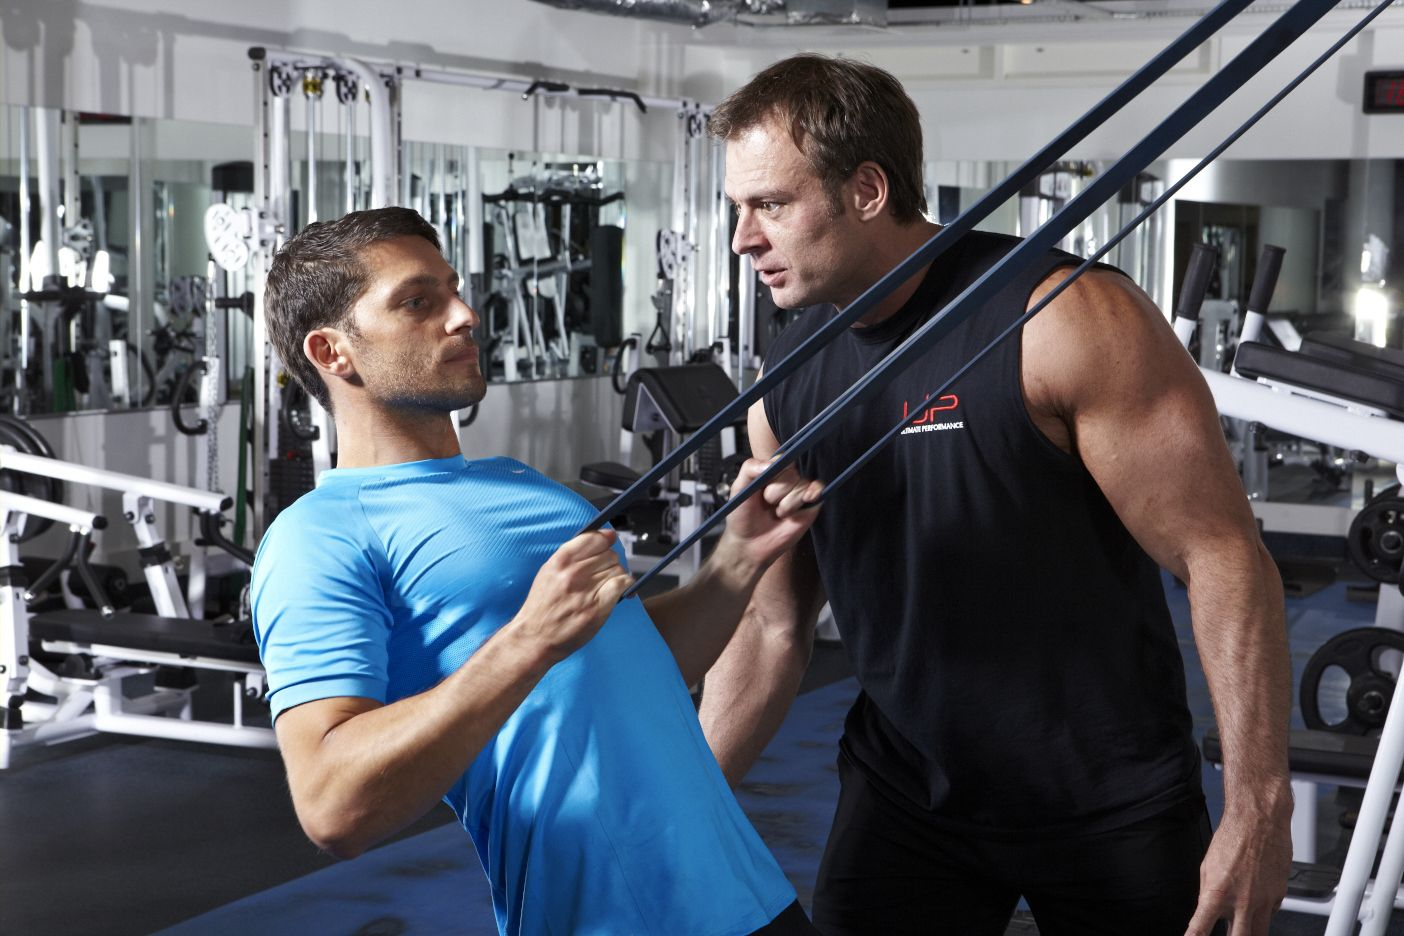 How To Design A Muscle-Building Plan For Beginners - Ultimate Performance